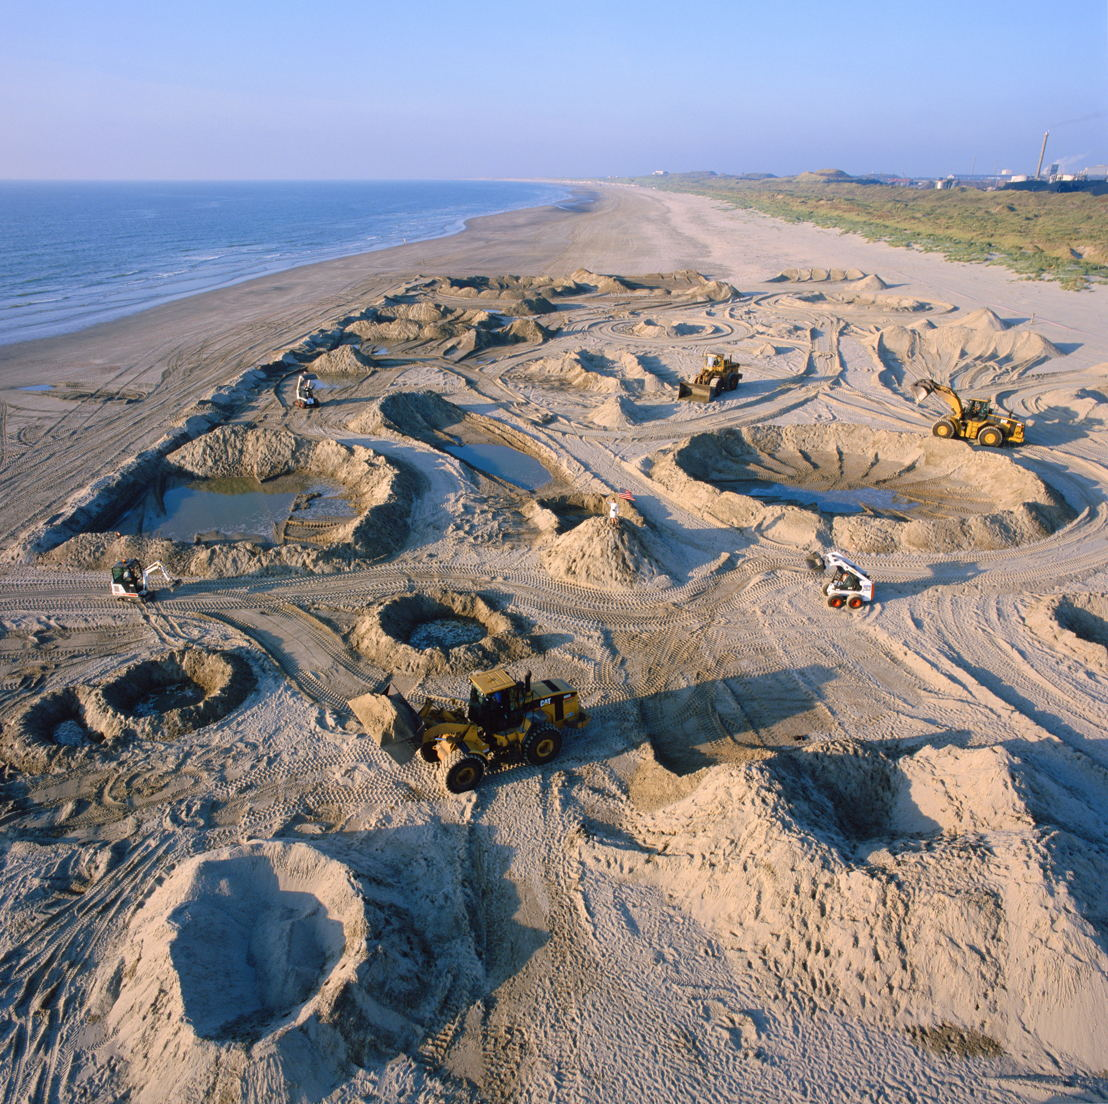 Aleksandra Mir 'First Woman on the Moon', Wijk aan Zee (NL), 1999